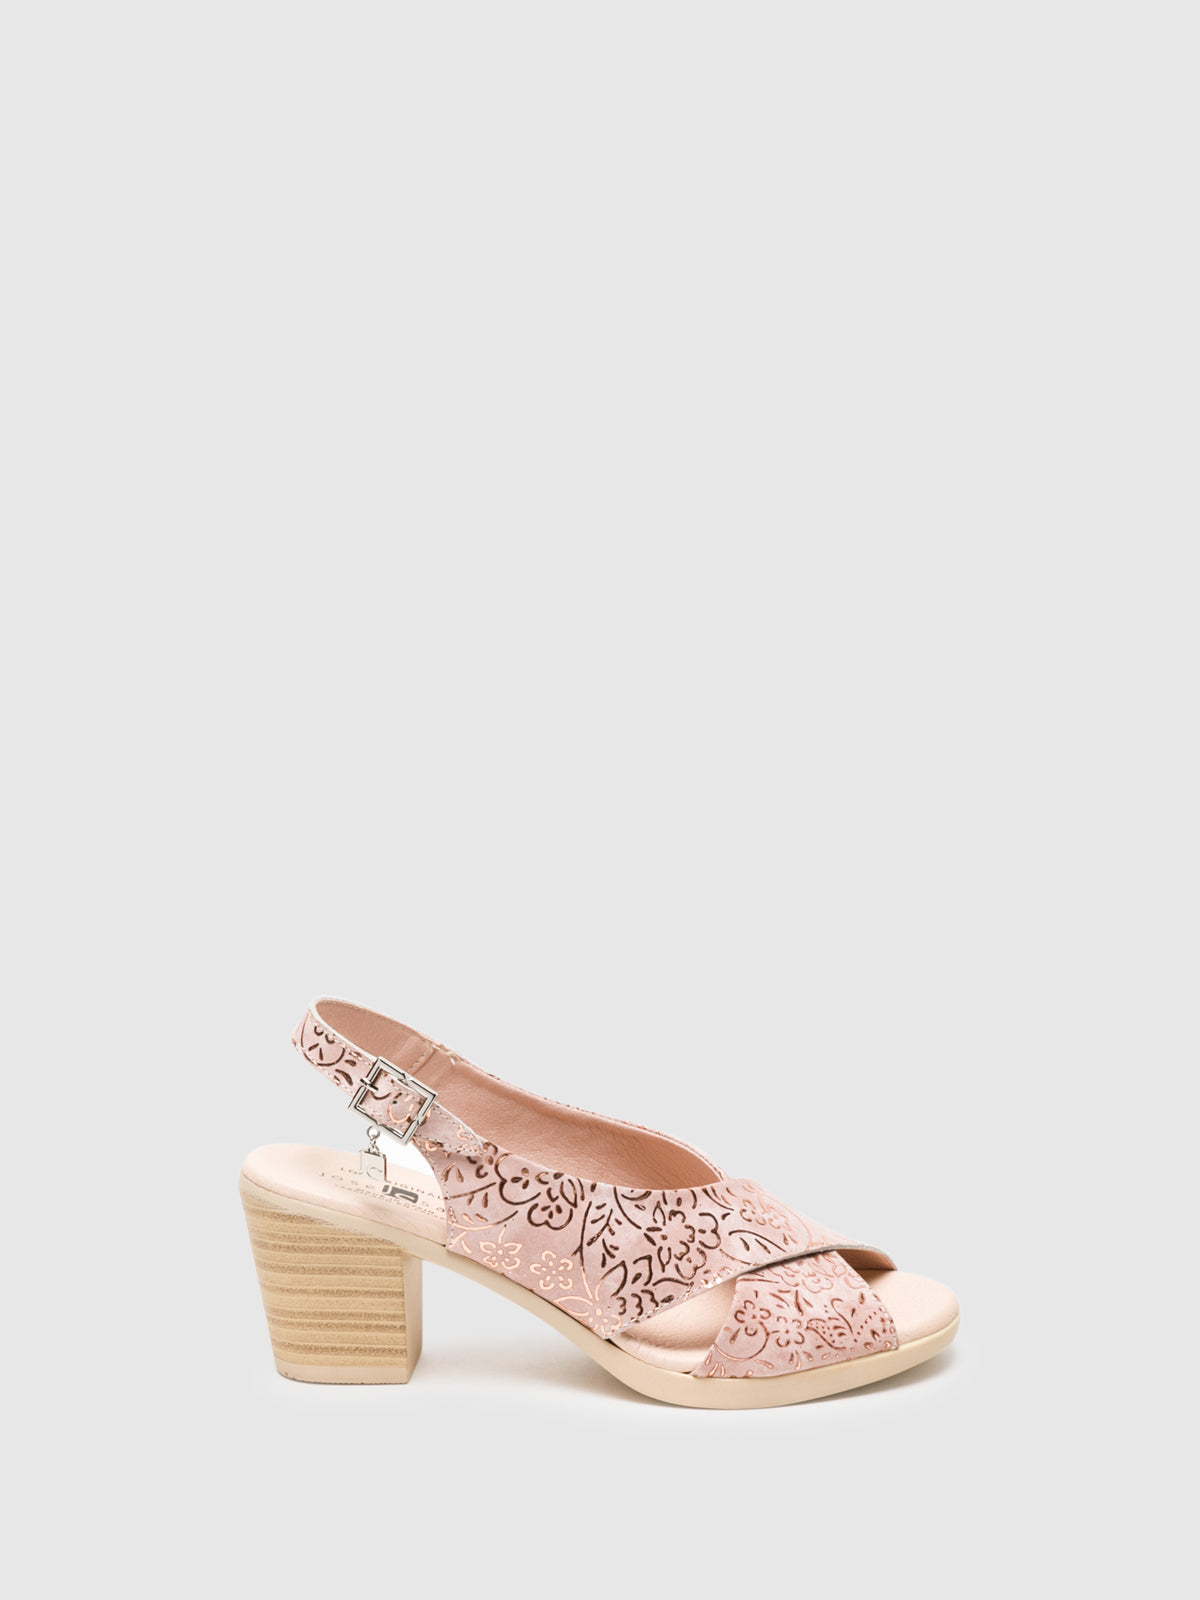 Jose Saenz LightPink Sling-Back Sandals